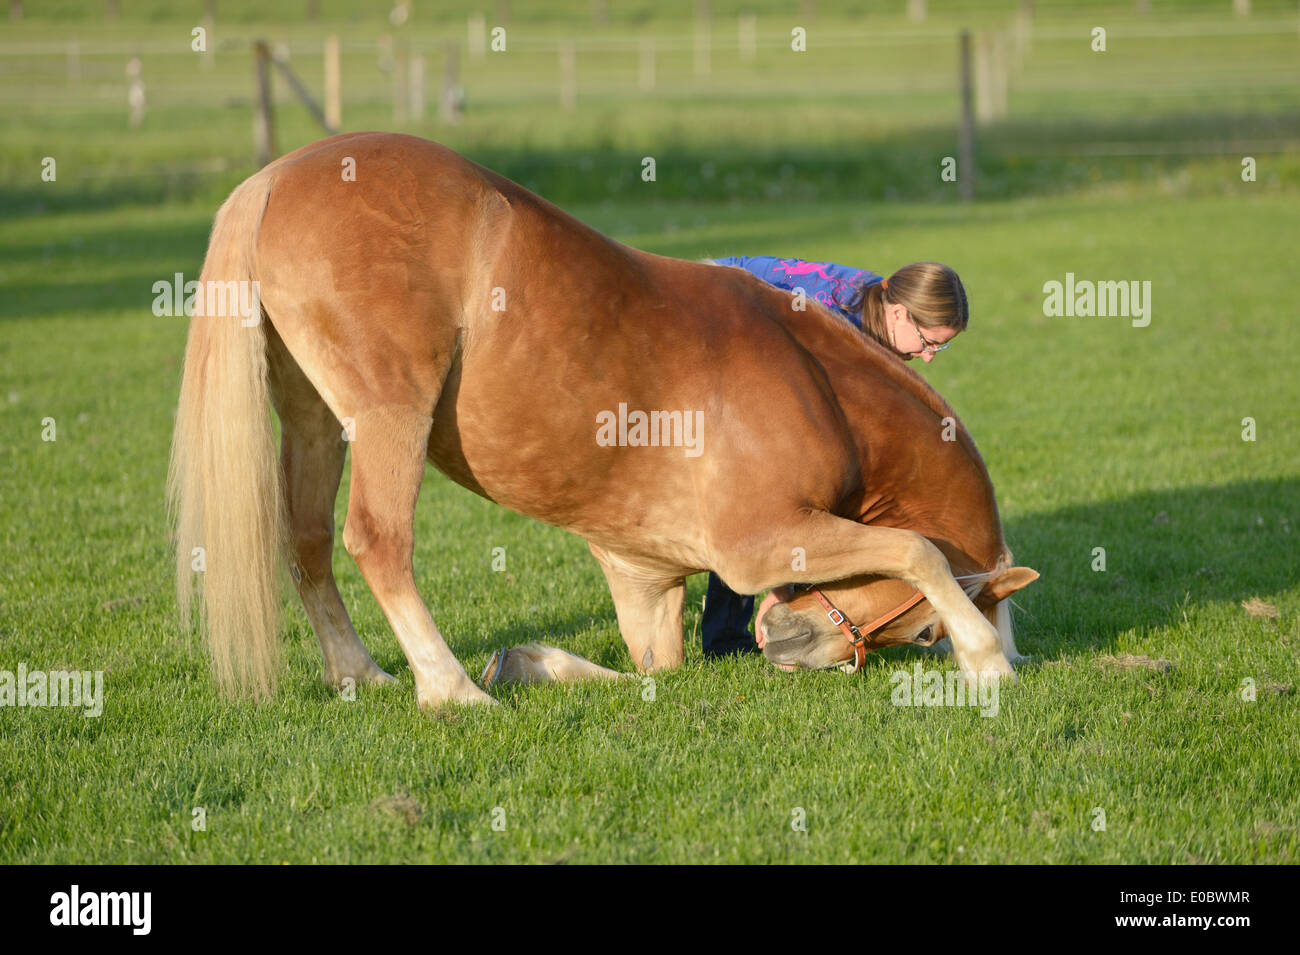 Haflinger horse doing compliment in a meadow - Stock Image